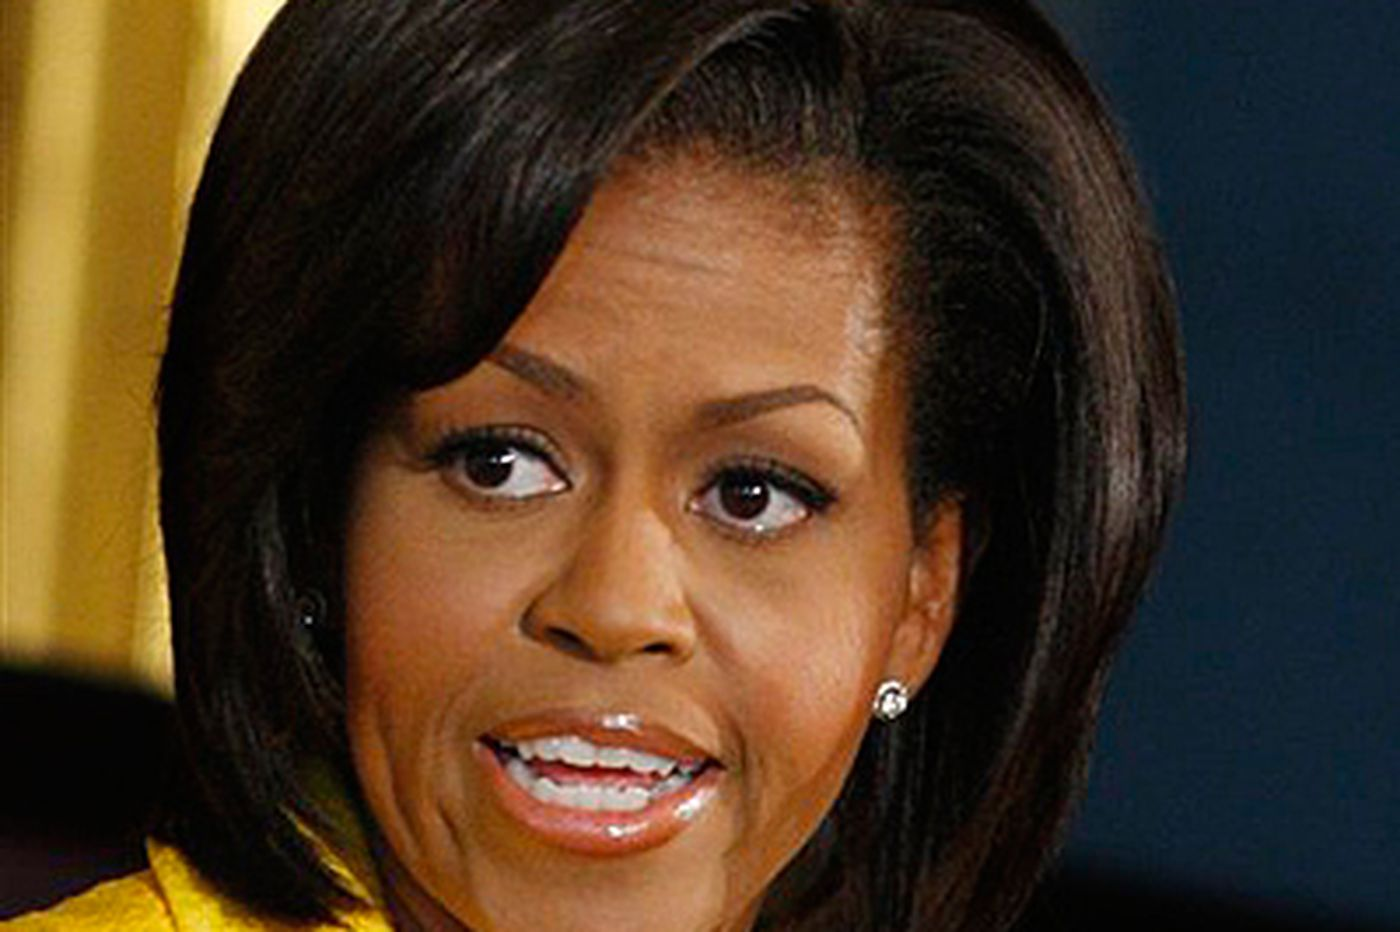 Michelle Obama cultivating food policy